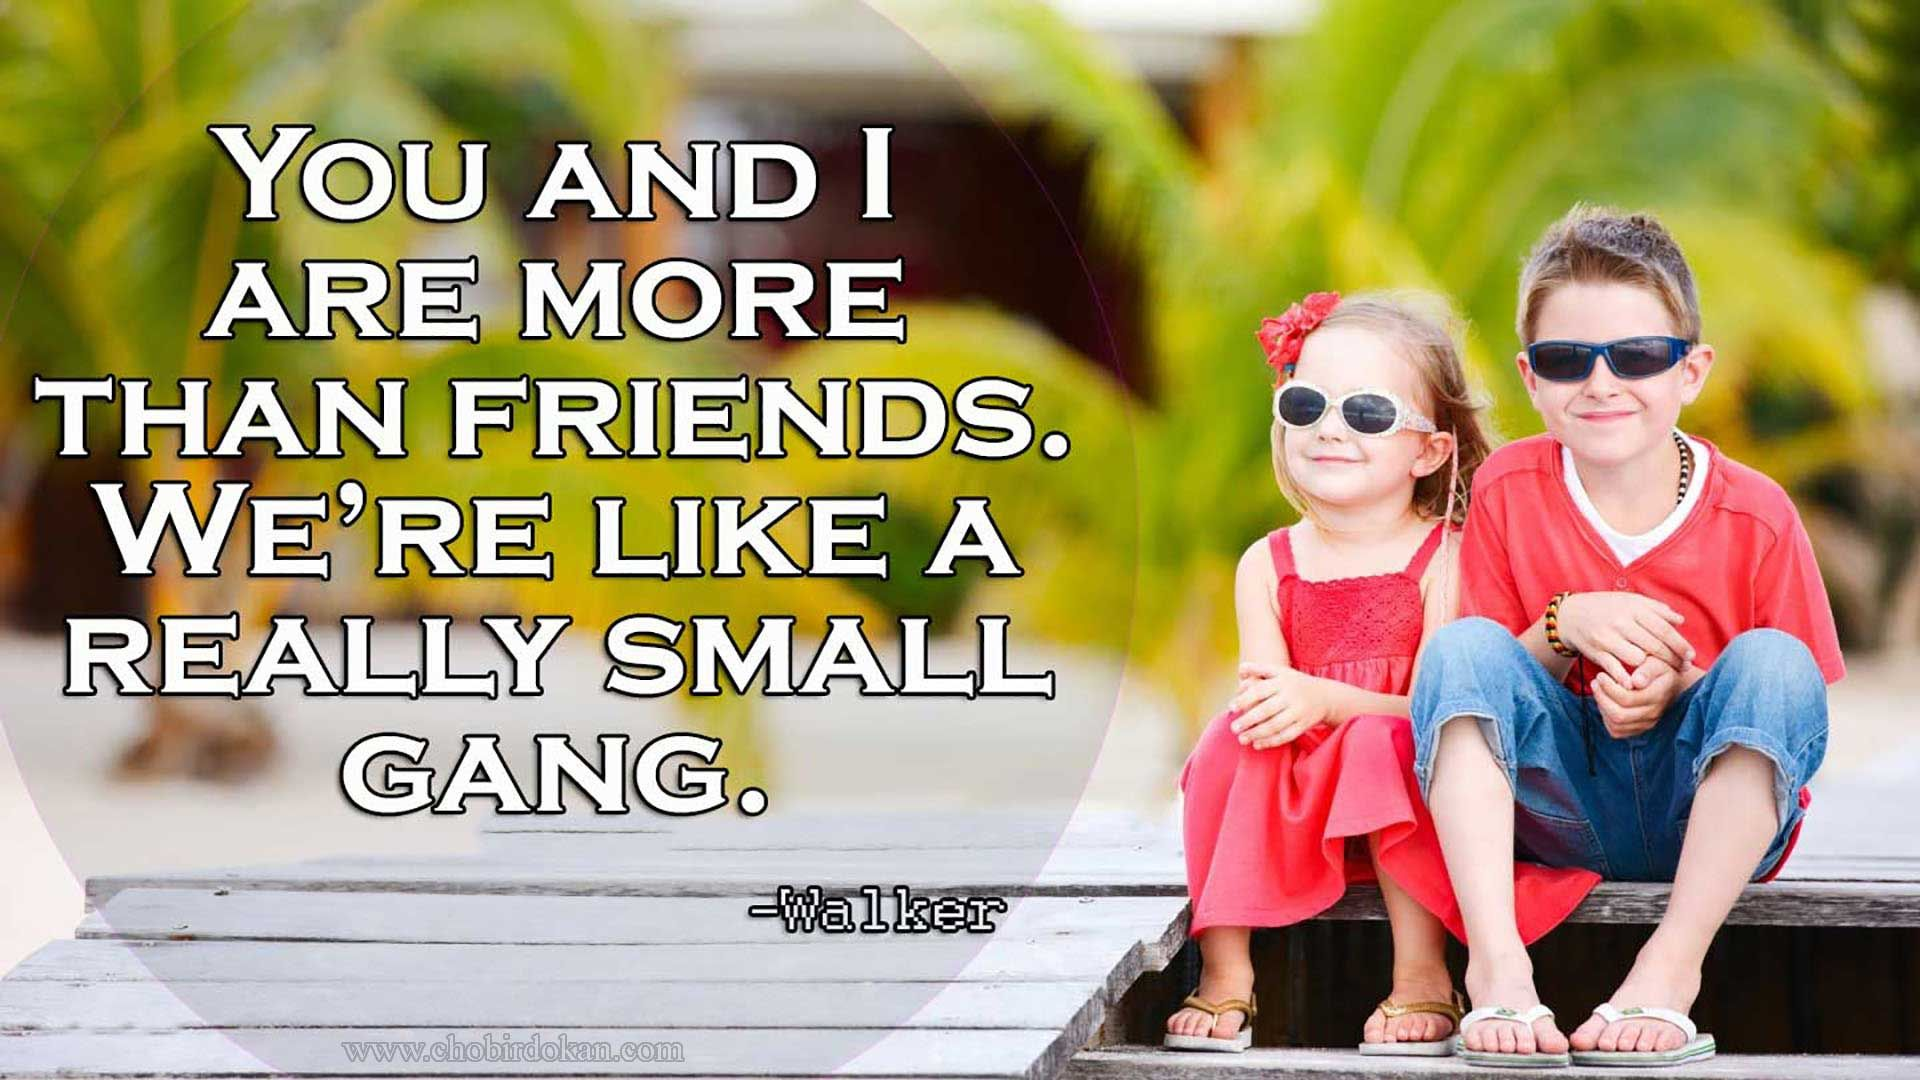 Friendship quotes pictures friendship quotes images pinterest friendship quotes pictures altavistaventures Images